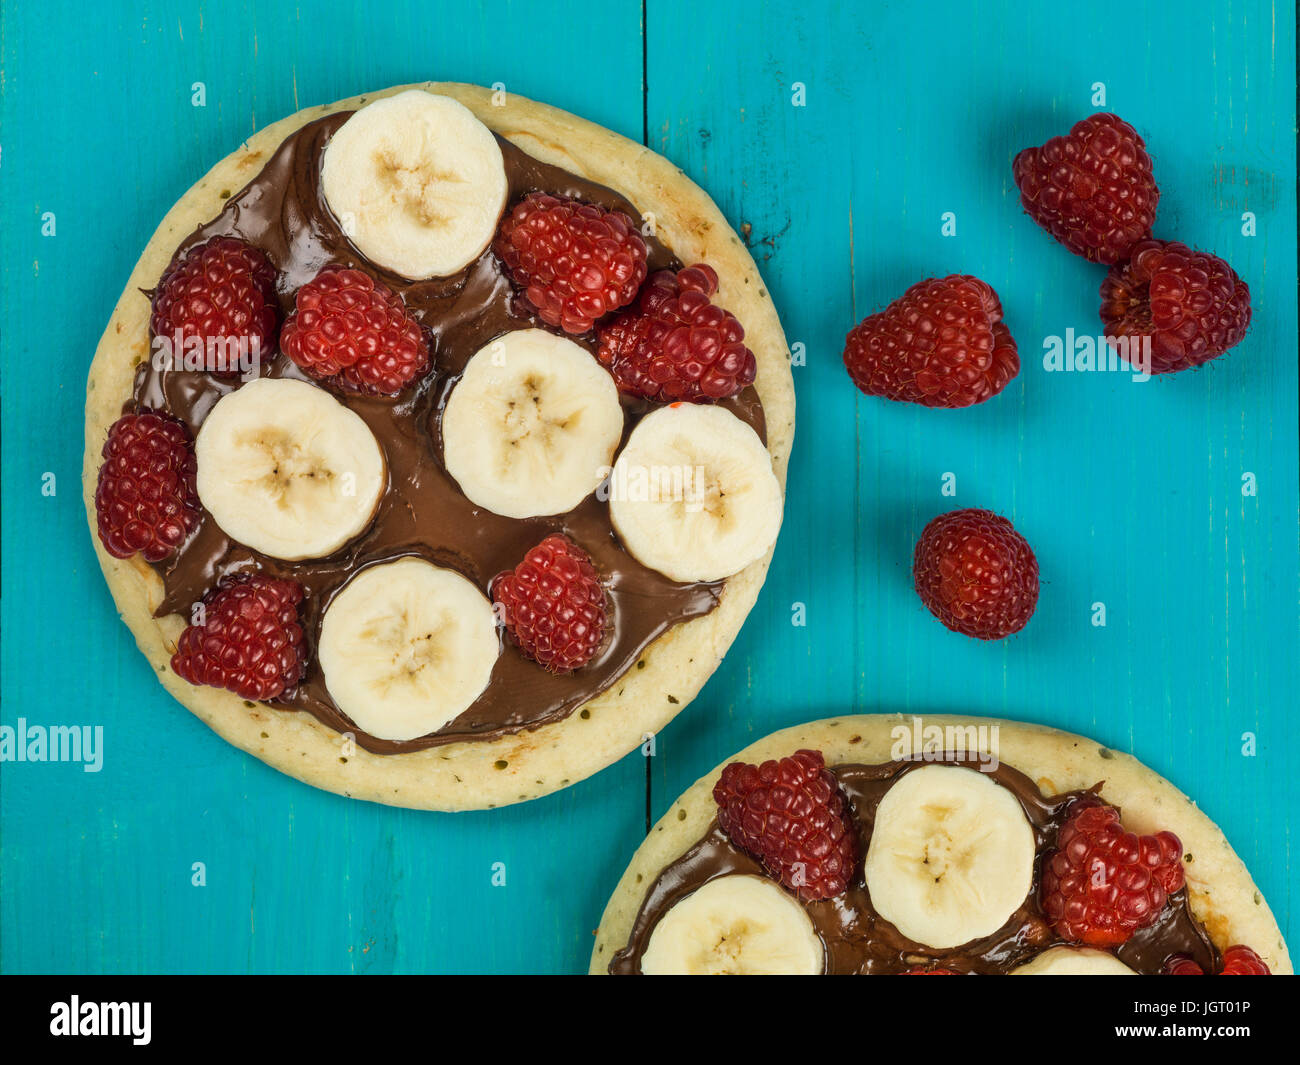 Pancakes with Chocolate Spread With Banana and Raspberries Against a Blue Background - Stock Image